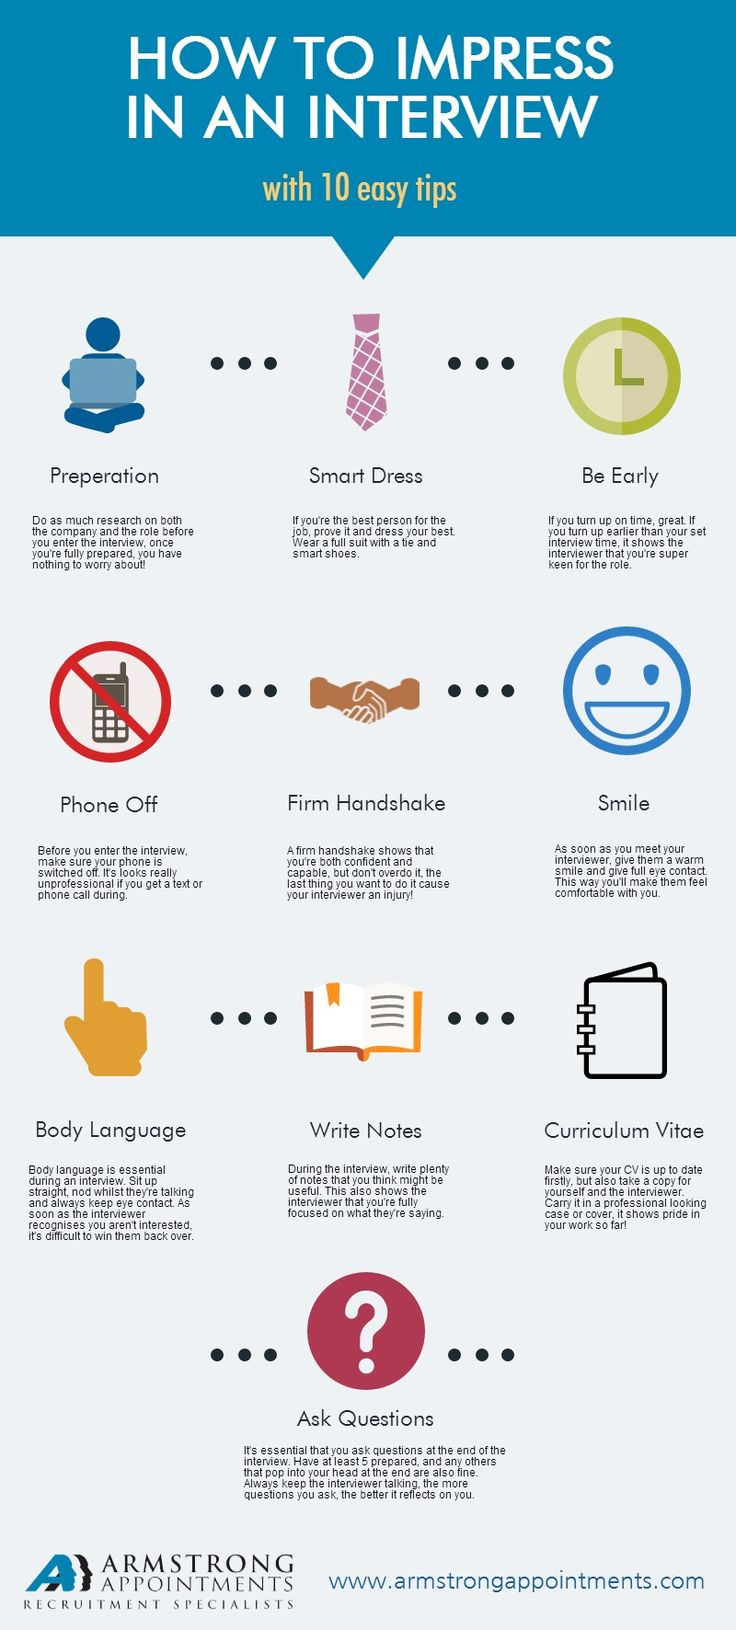 How To Impress In An Interview [Infographic] #getthatjob #usq #career